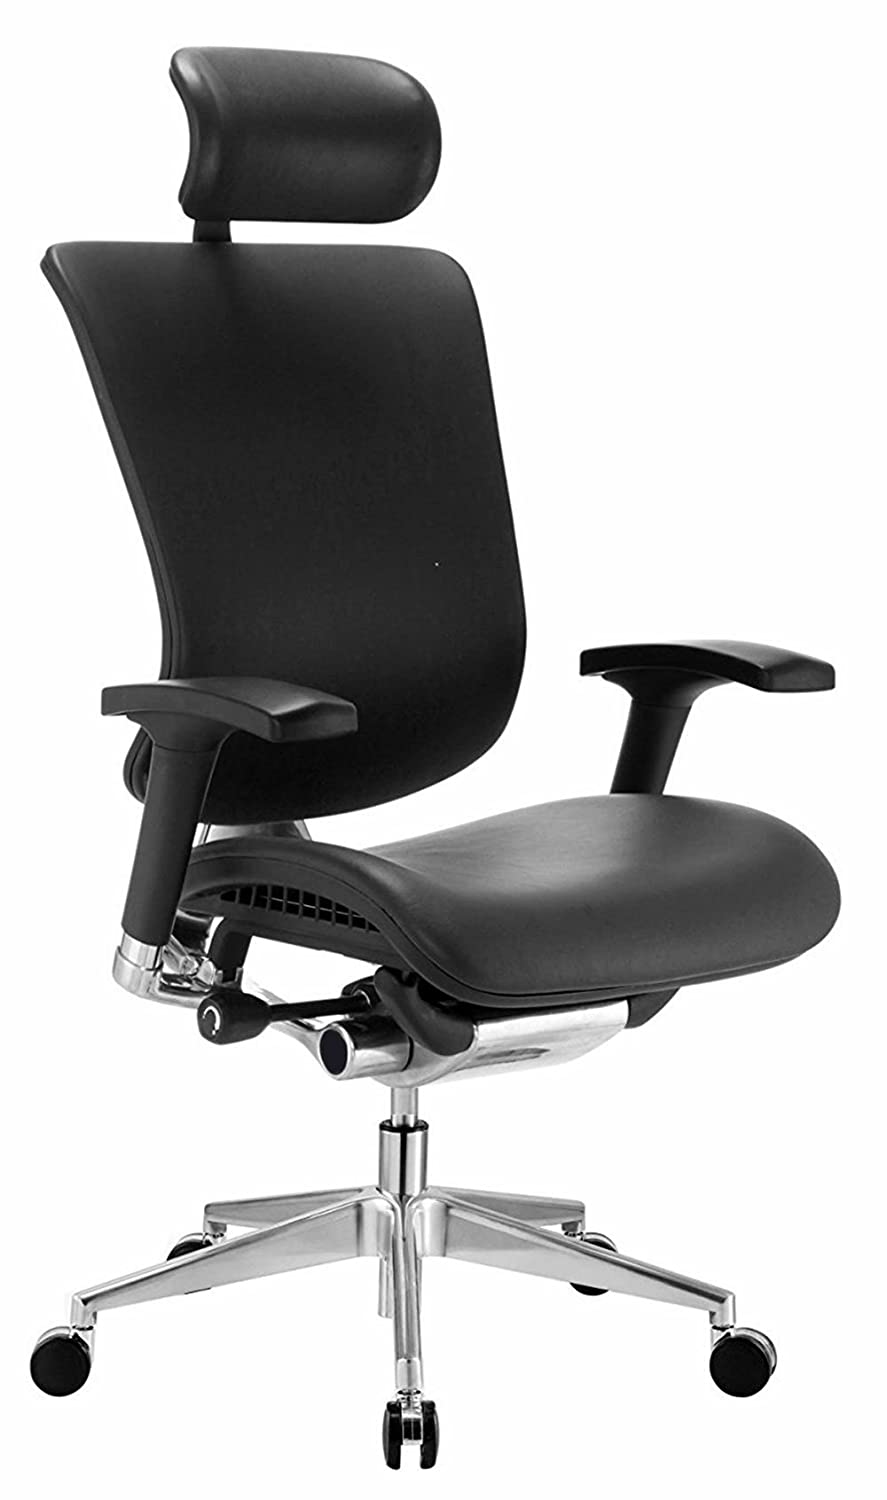 GM Seating Ergonomic Executive Genuine Leather Chair Dreem Chair Chrome Base